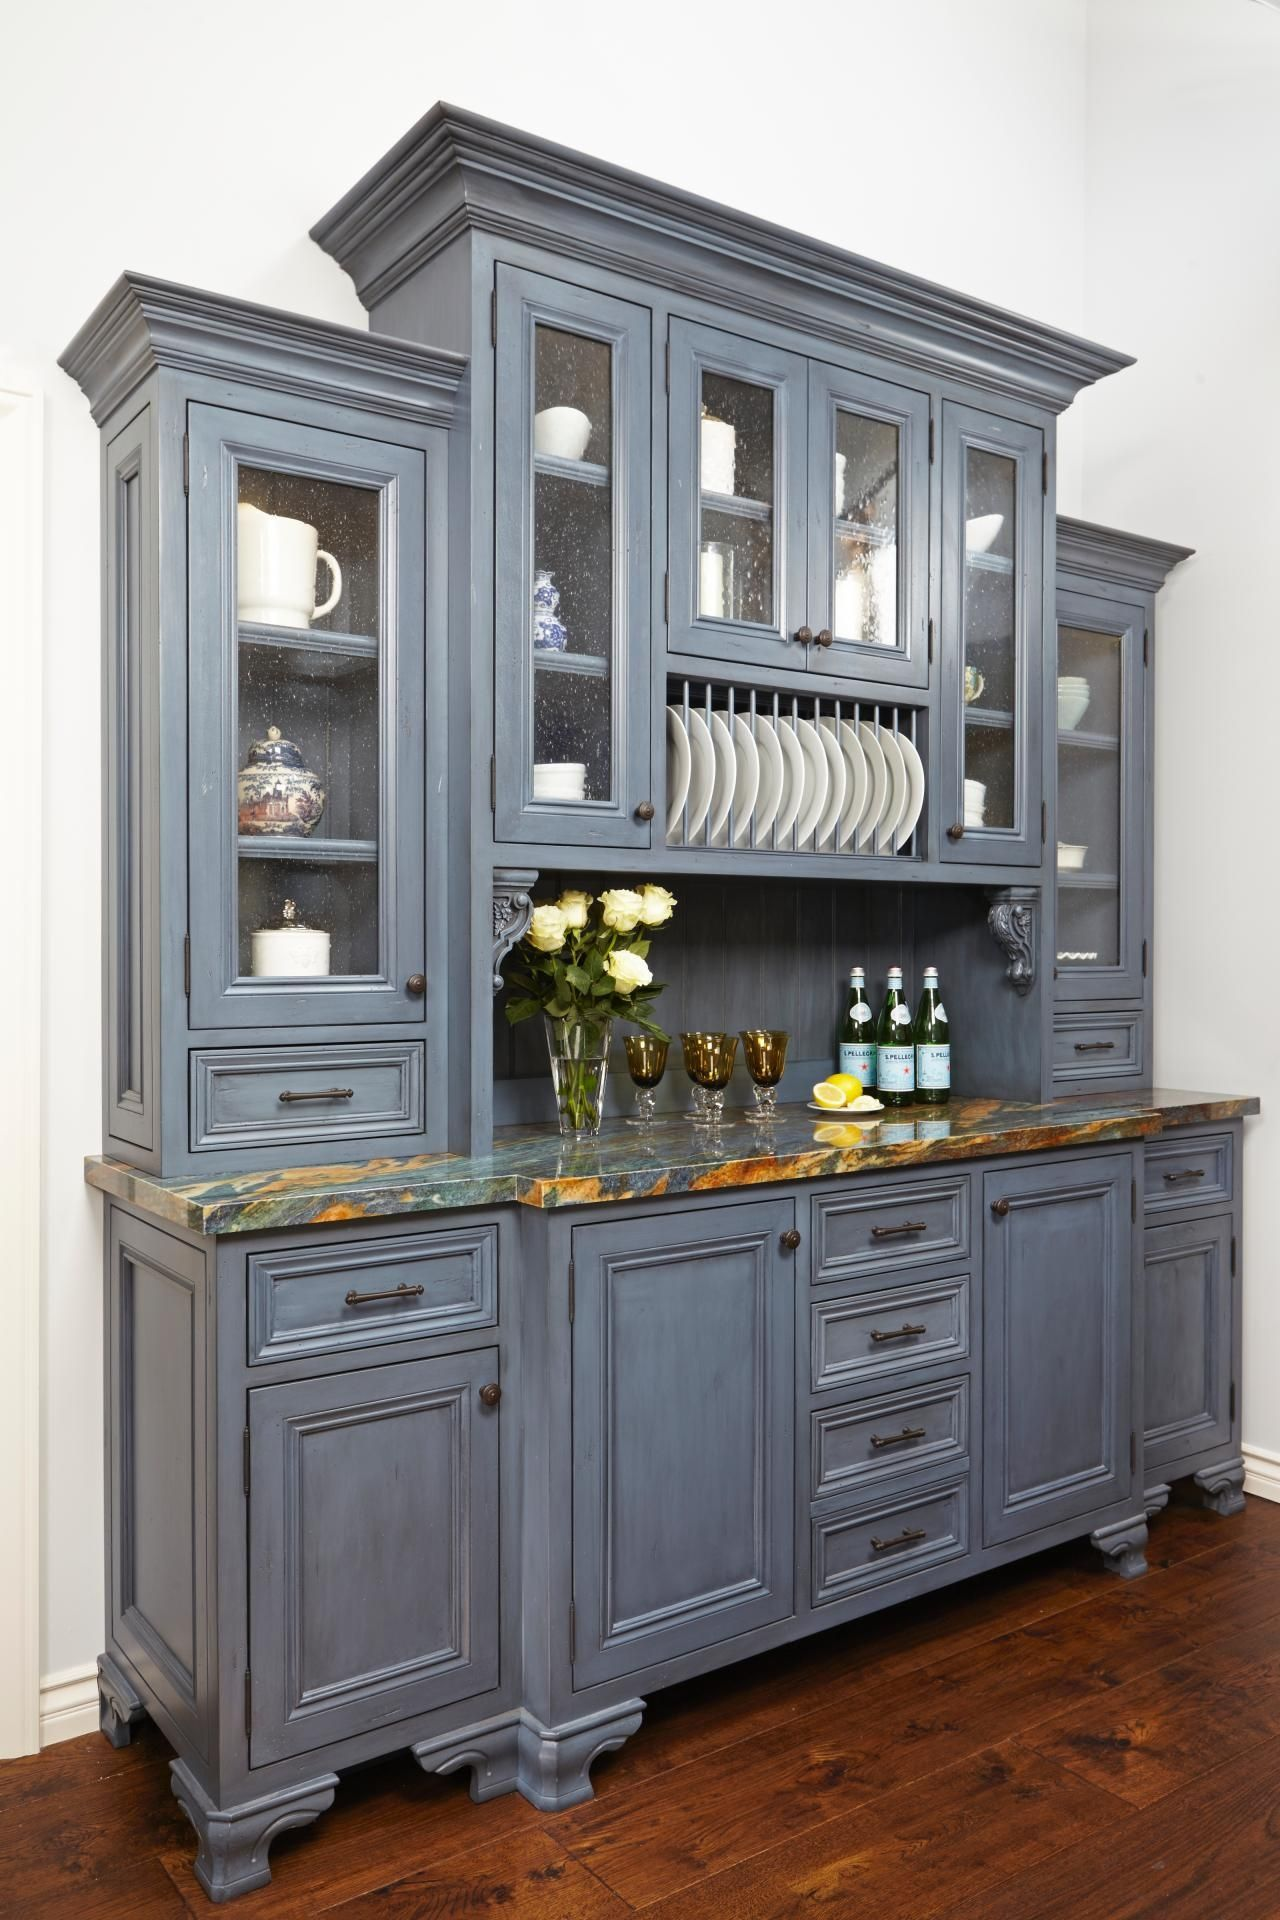 Kitchens French Country Kitchen Hutch Ideas Kitchen hutch Kitchen Buffets.  Kitchen Hutch For Storage. Modern Kitchen Hutch.